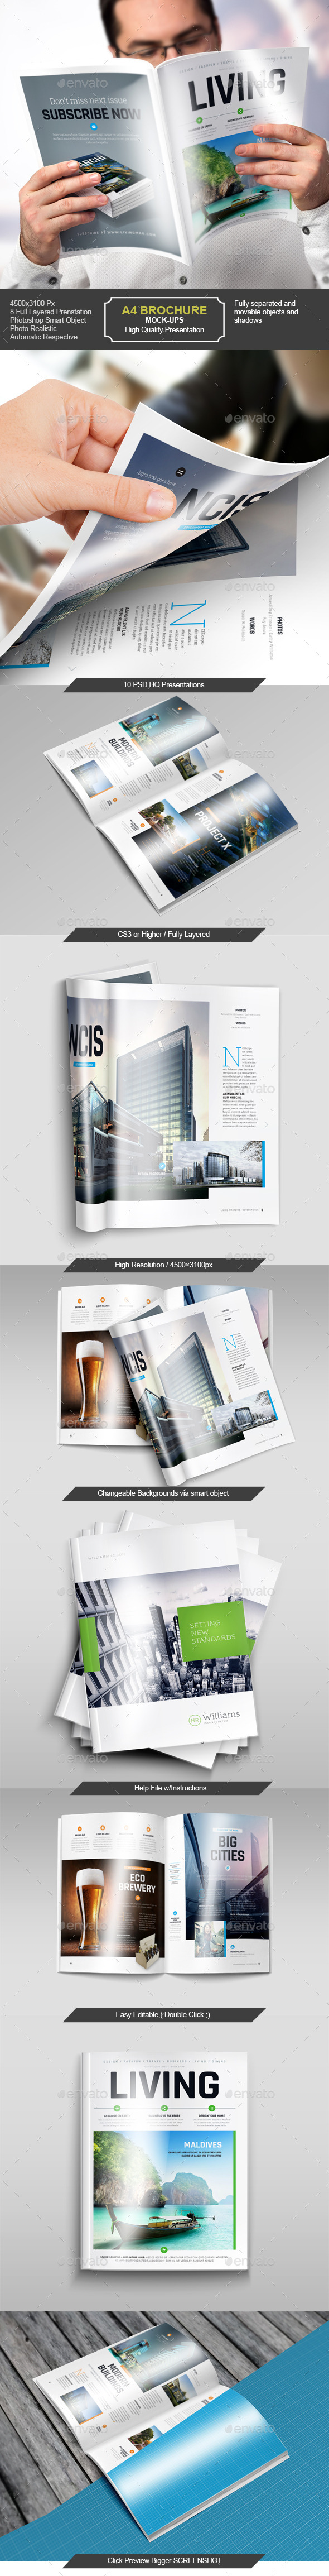 A4 / Brochure Magazine / Mock-Up Set  - Brochures Print